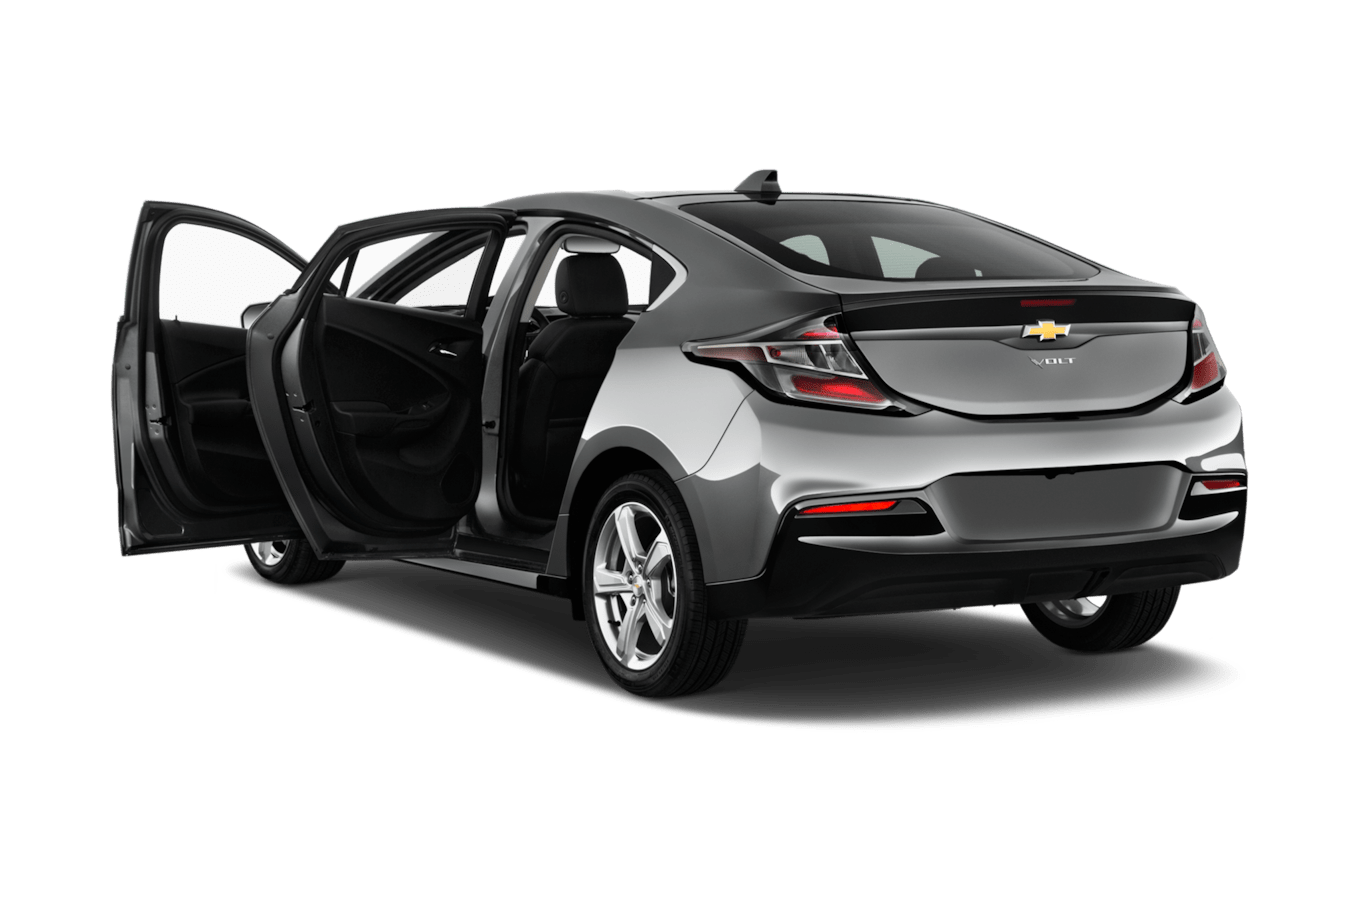 2018 Chevrolet Volt Reviews And Rating  Motor Trend